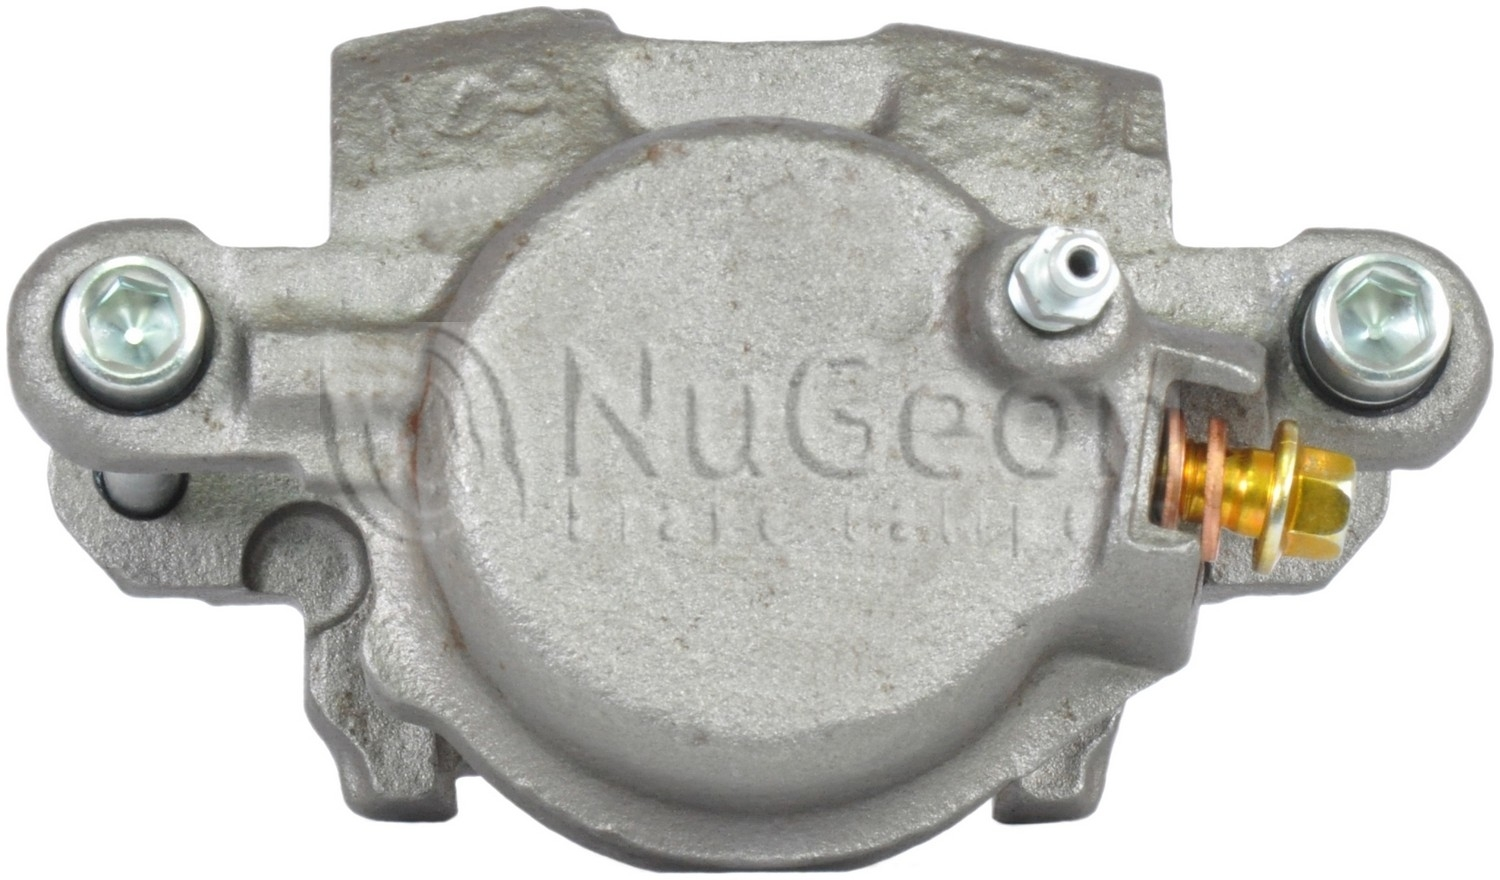 NUGEON (2017) - Reman Caliper w/ Installation Hardware - NUN 97-17249B